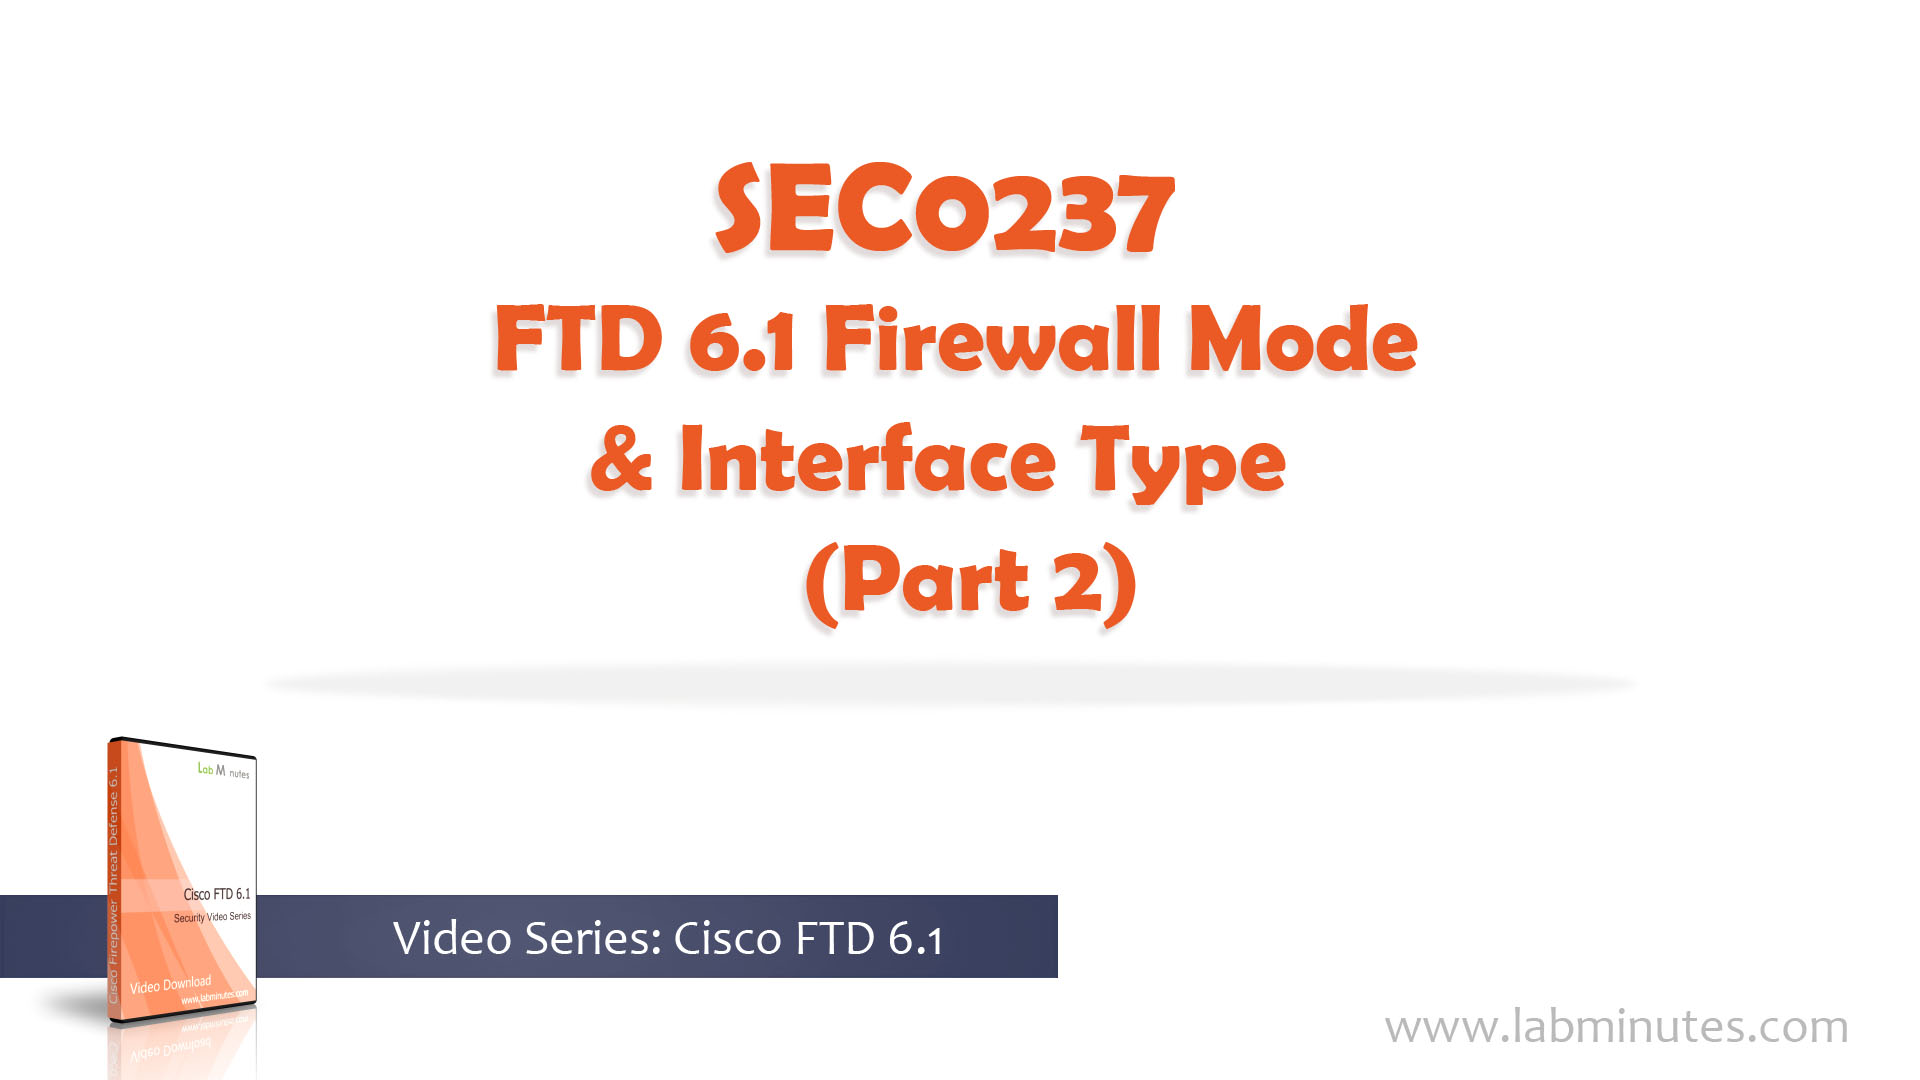 How to Configure FTD 6 1 Firewall Mode and Interface Type